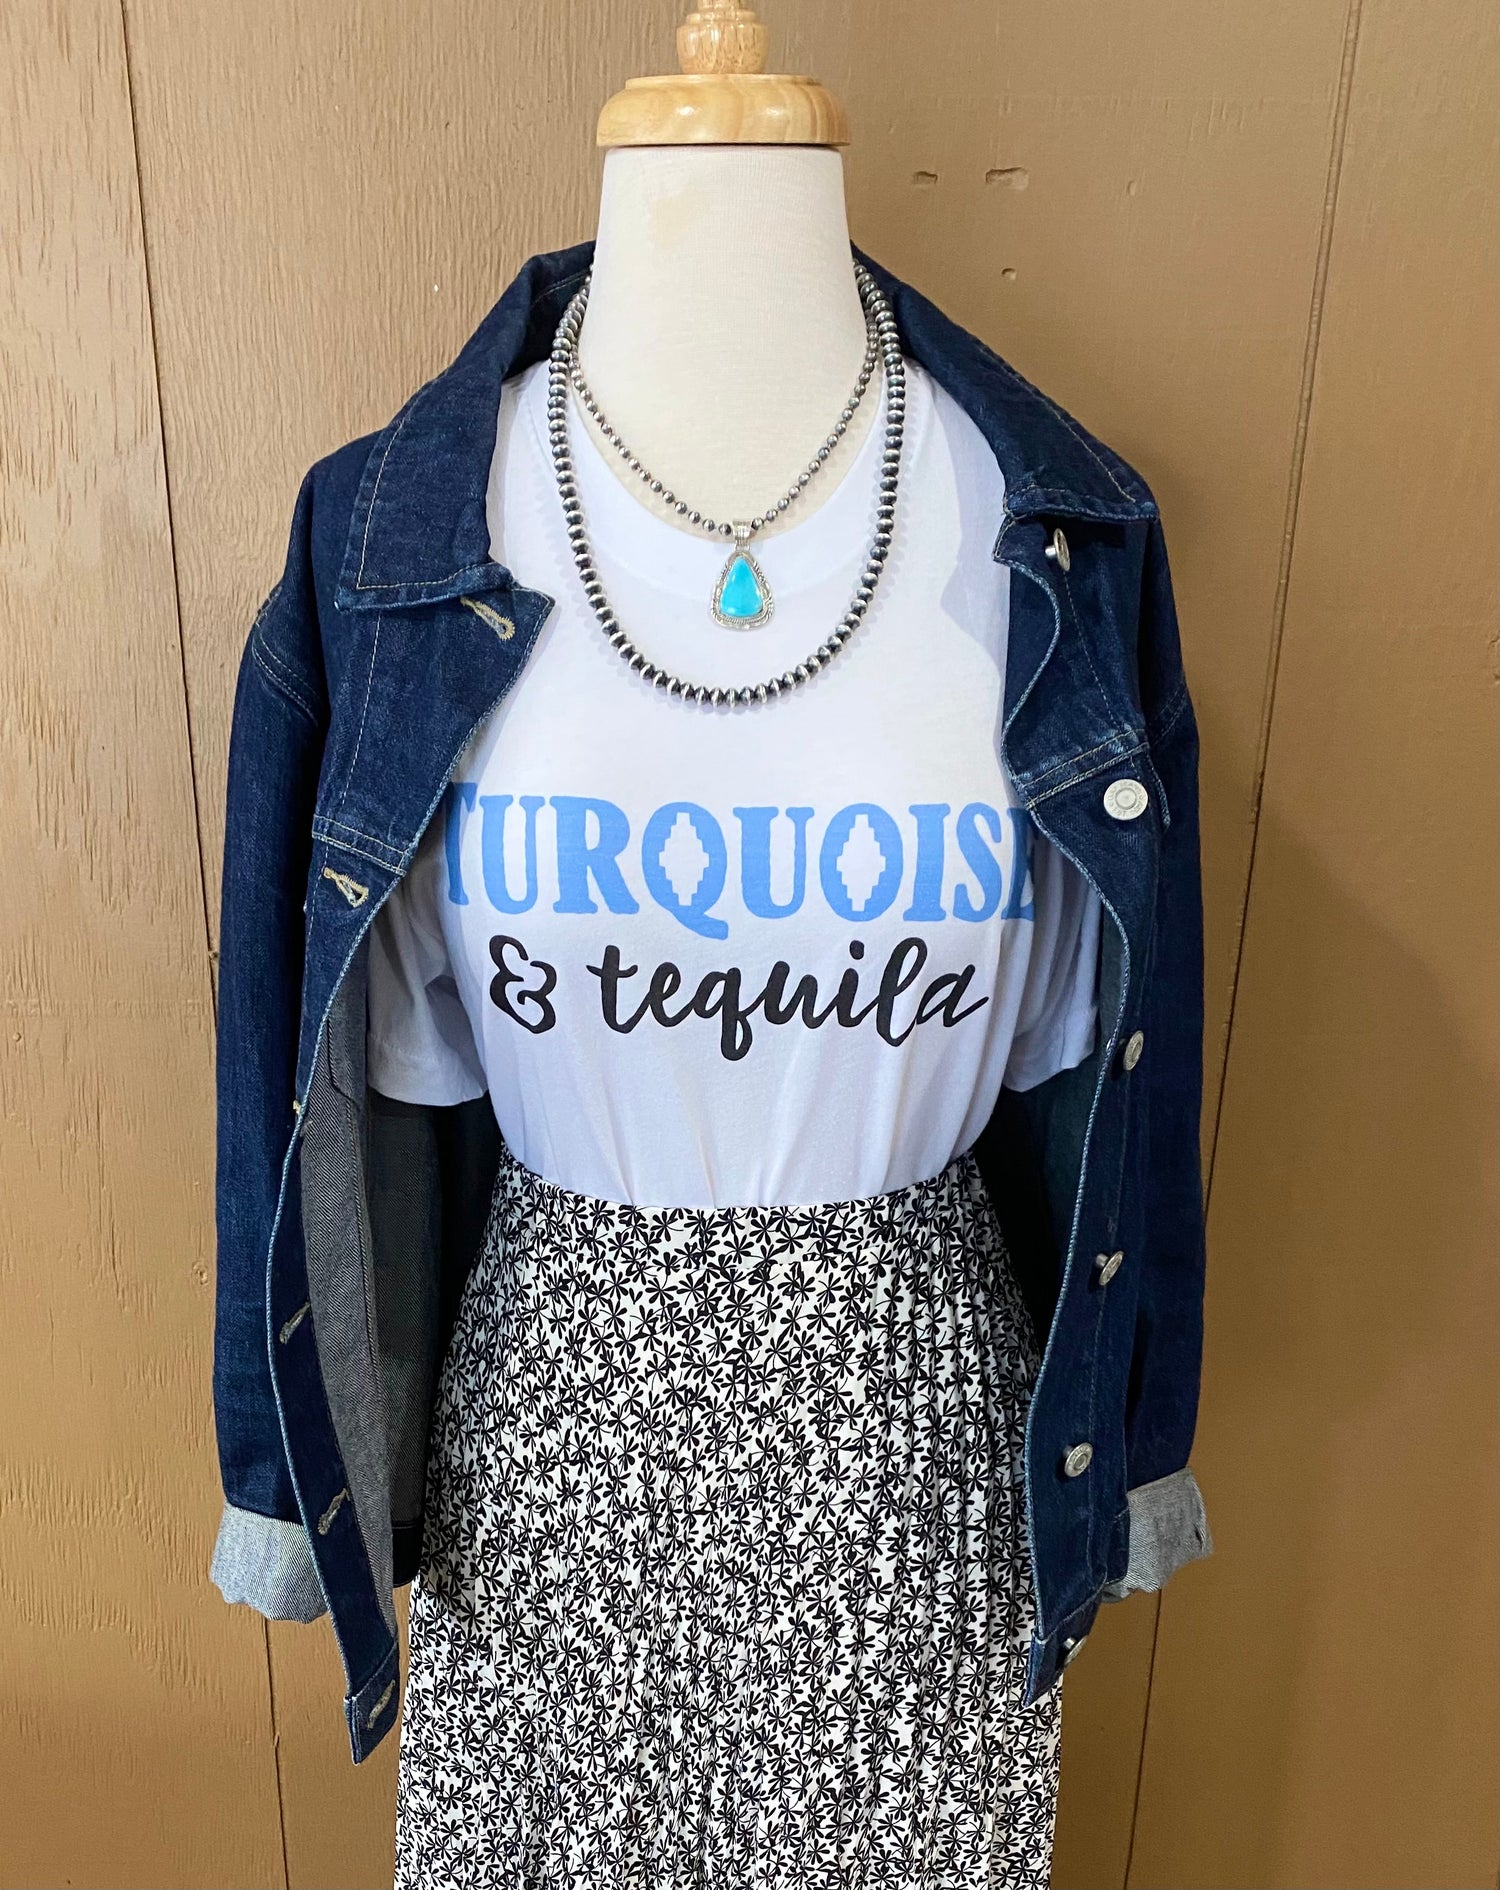 Turquoise & Tequila Shirt